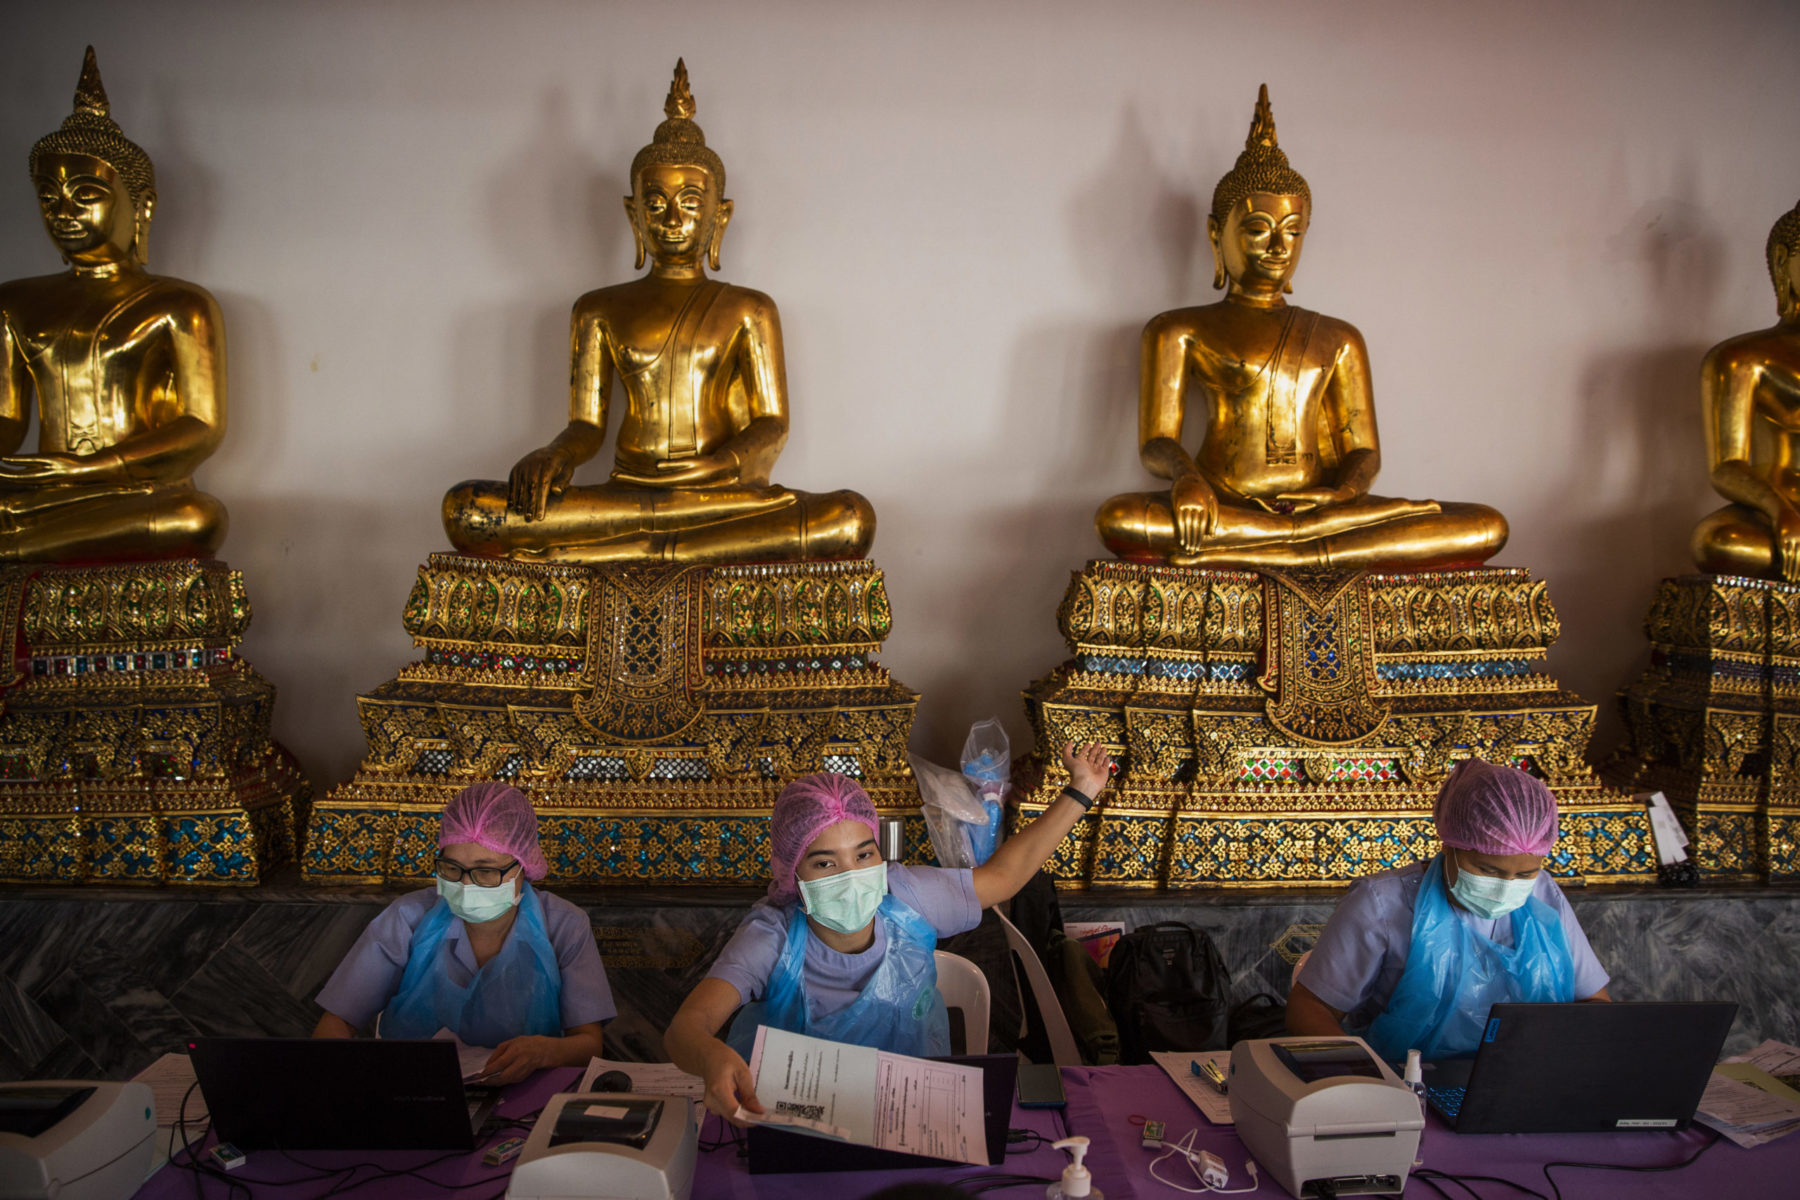 Three healthcare workers with gloves and masks sit in front of statues at a monestary.